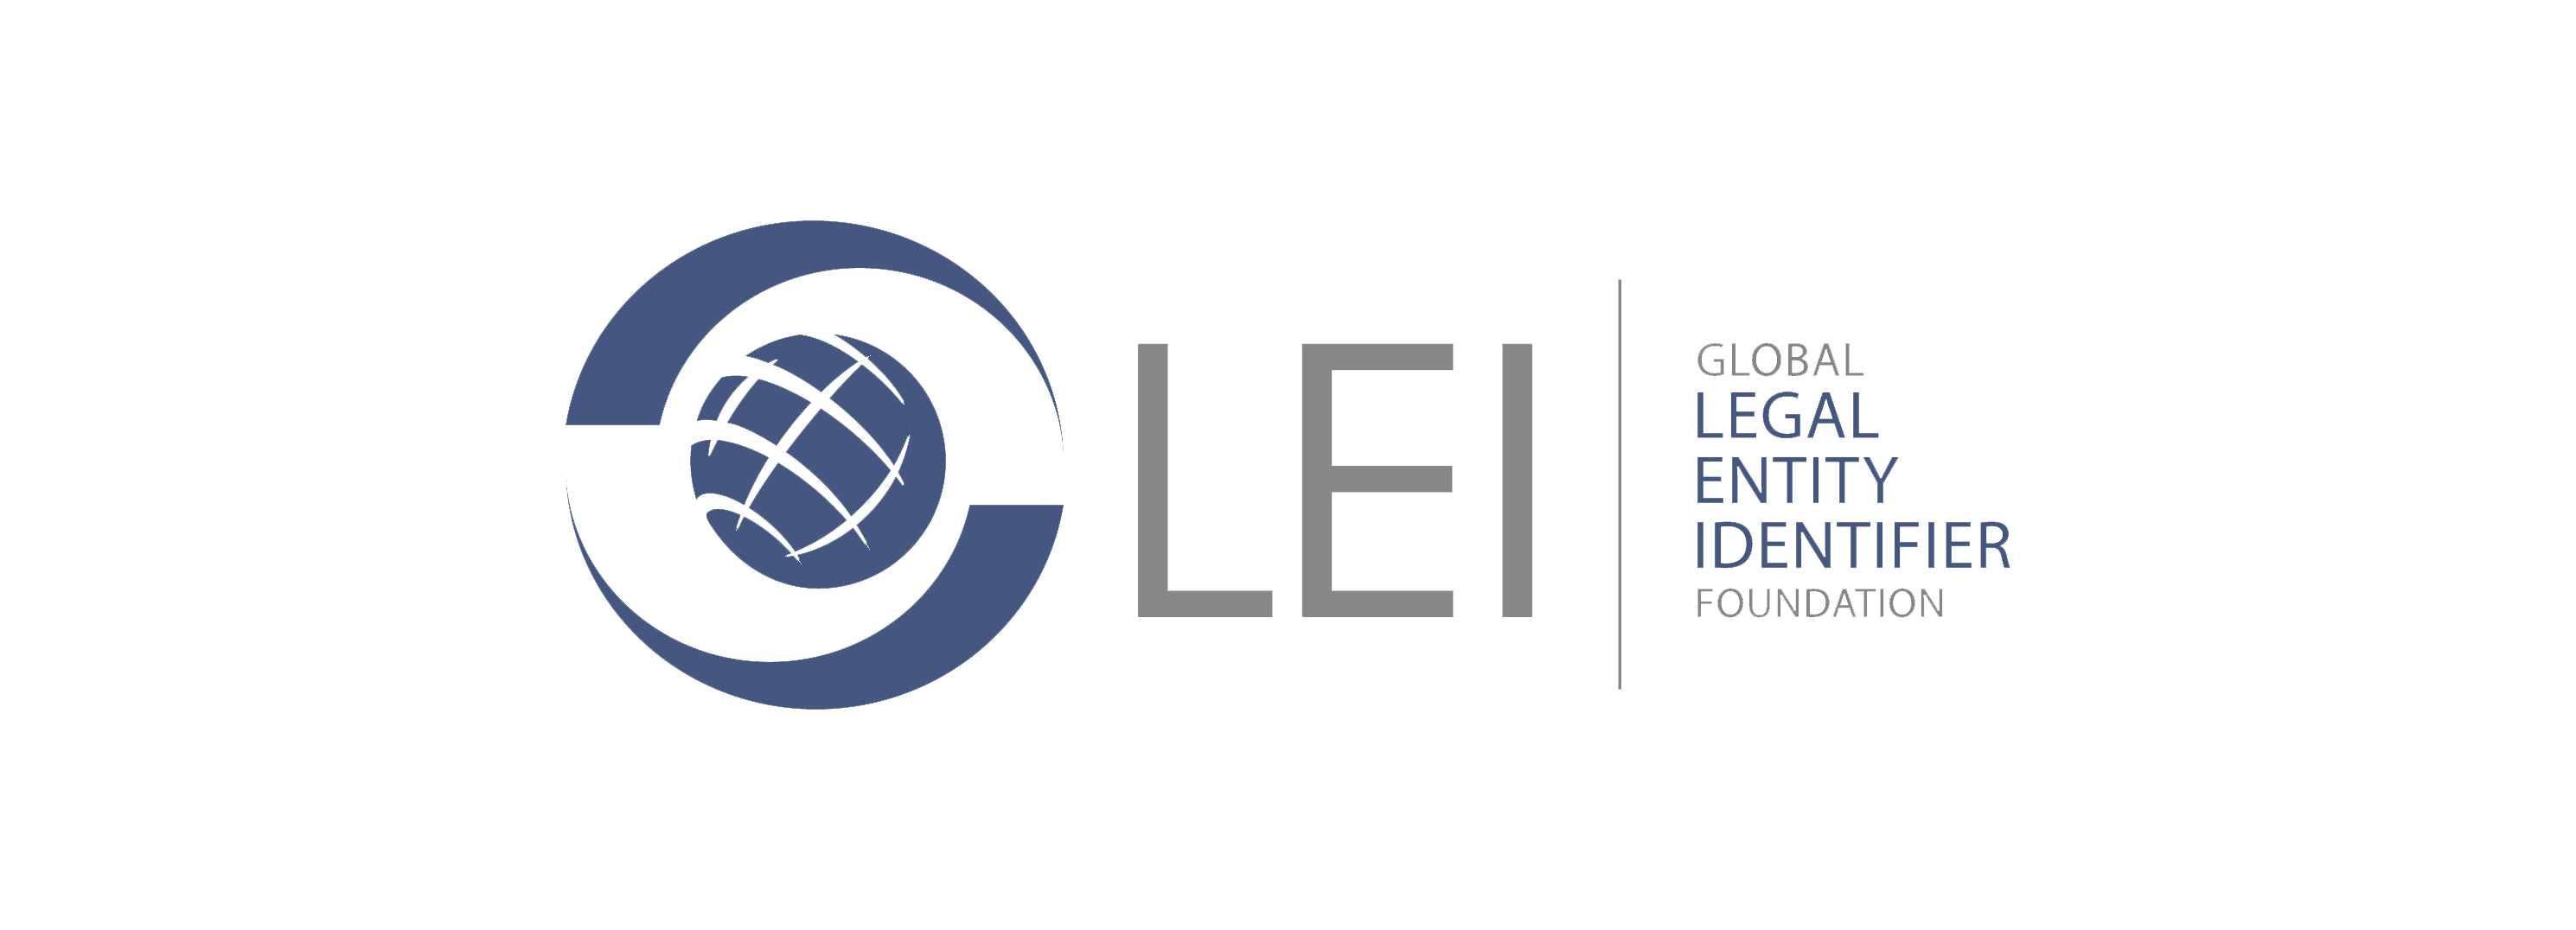 GLEIF Advances Digital Trust and Identity for Legal Entities Globally